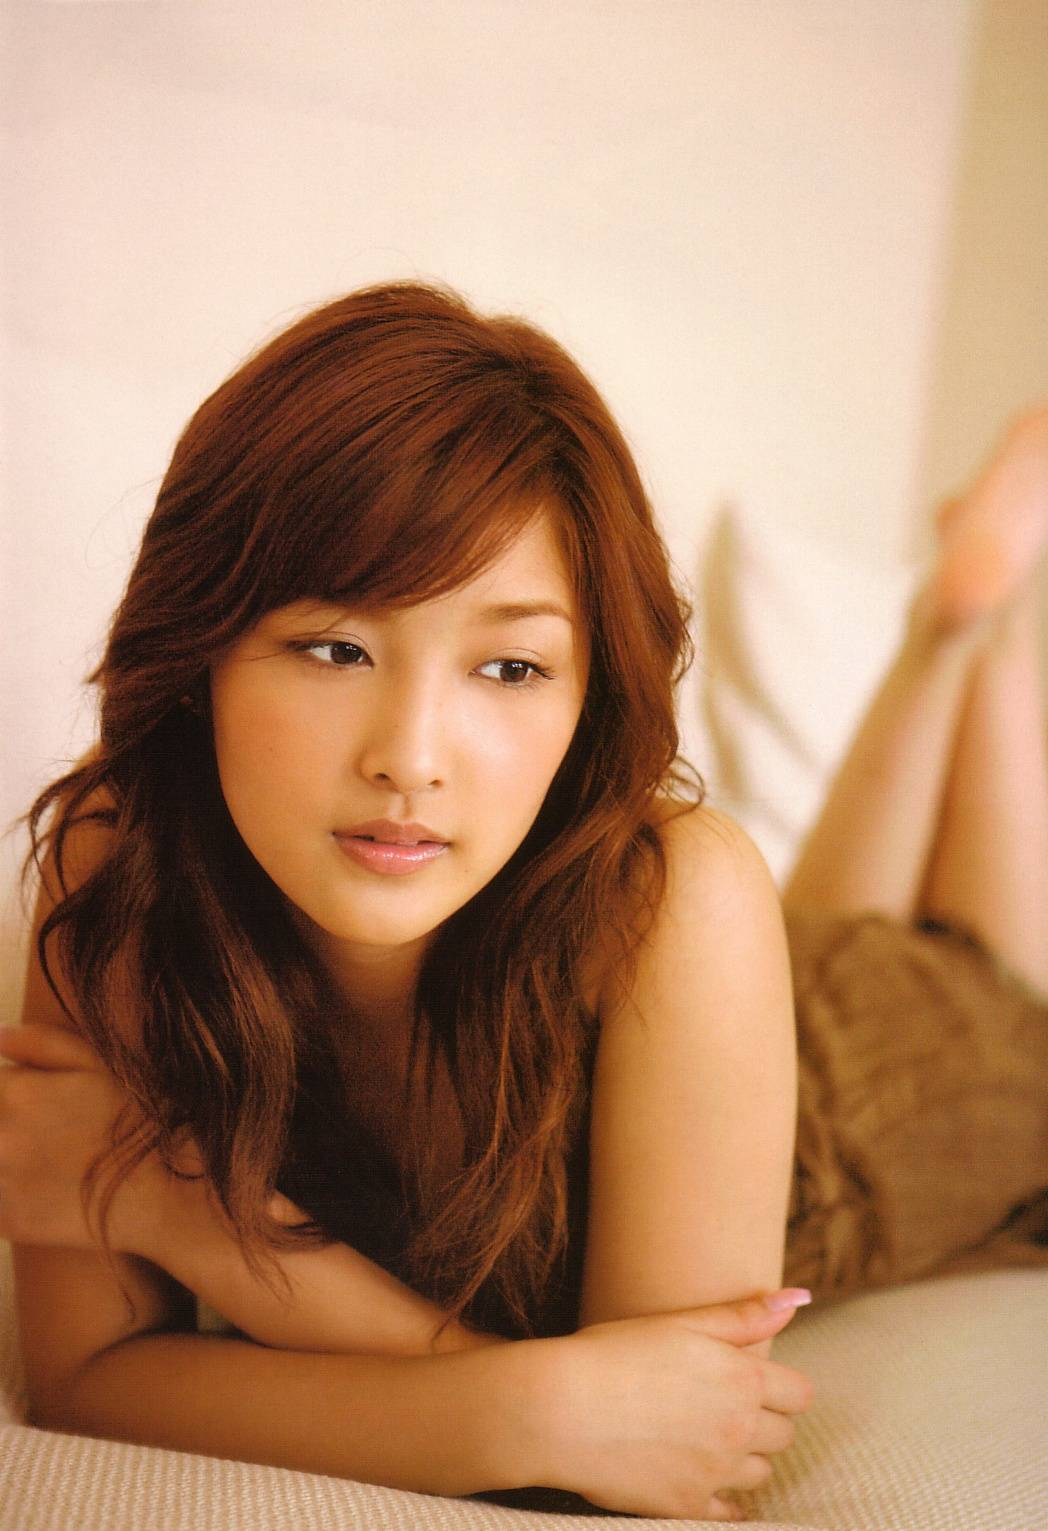 Ishikawa Rika (石川梨華), Morning Musume, Photobook